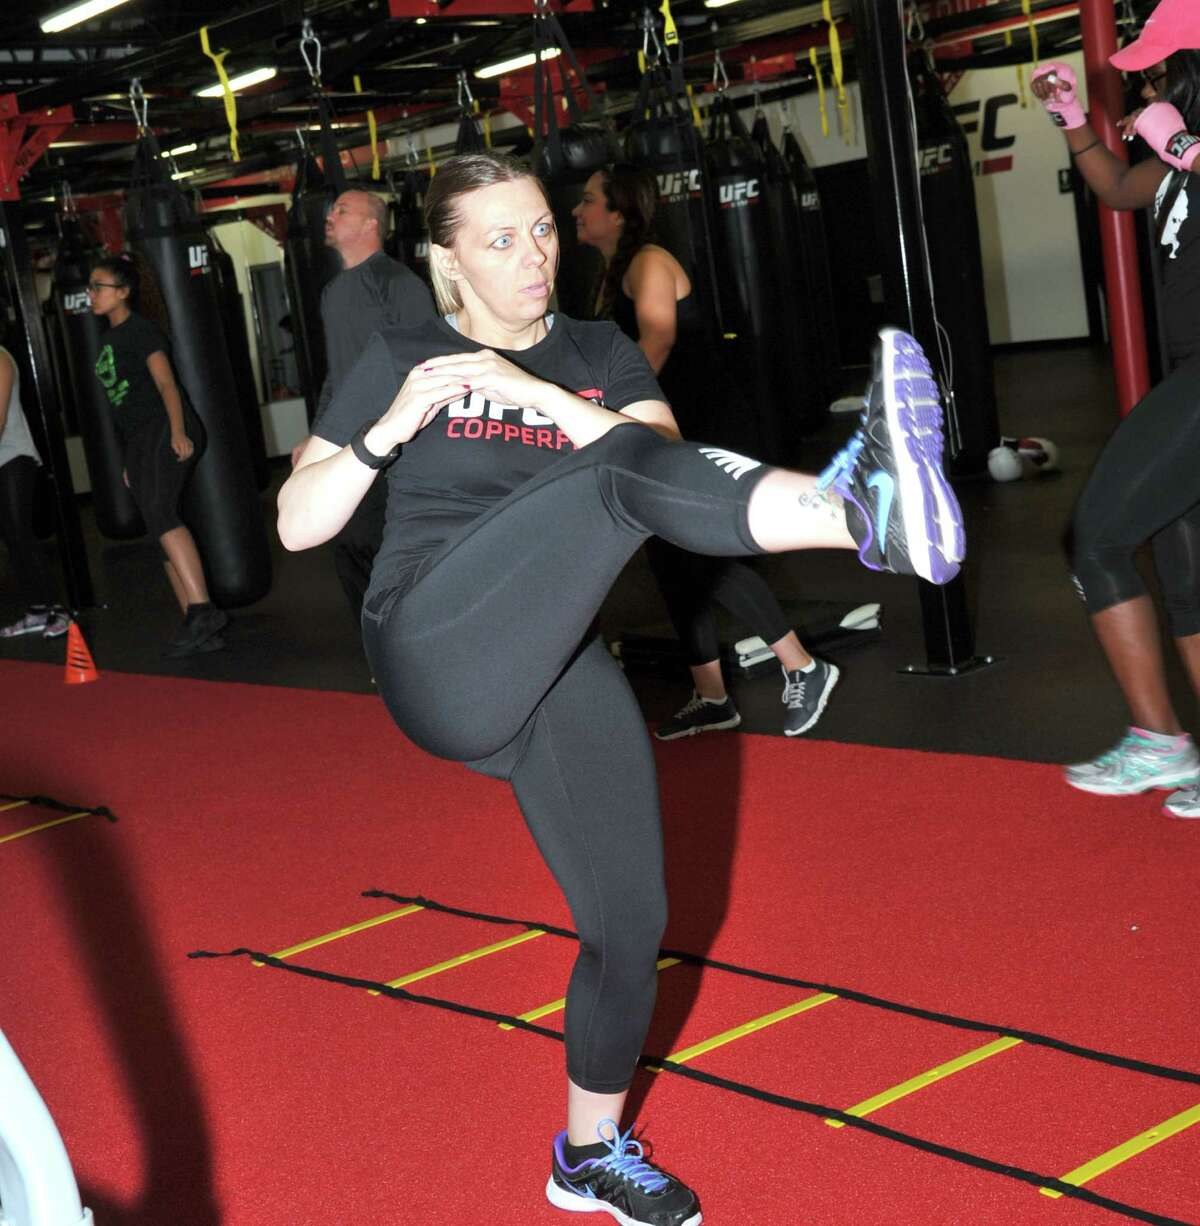 Kristyna Anaya practices her high kick as part of her workout at UFC Gym Copperfield. The gym, which bases workouts on training techniques used by mixed-martial arts fighters, opened more than a year ago.